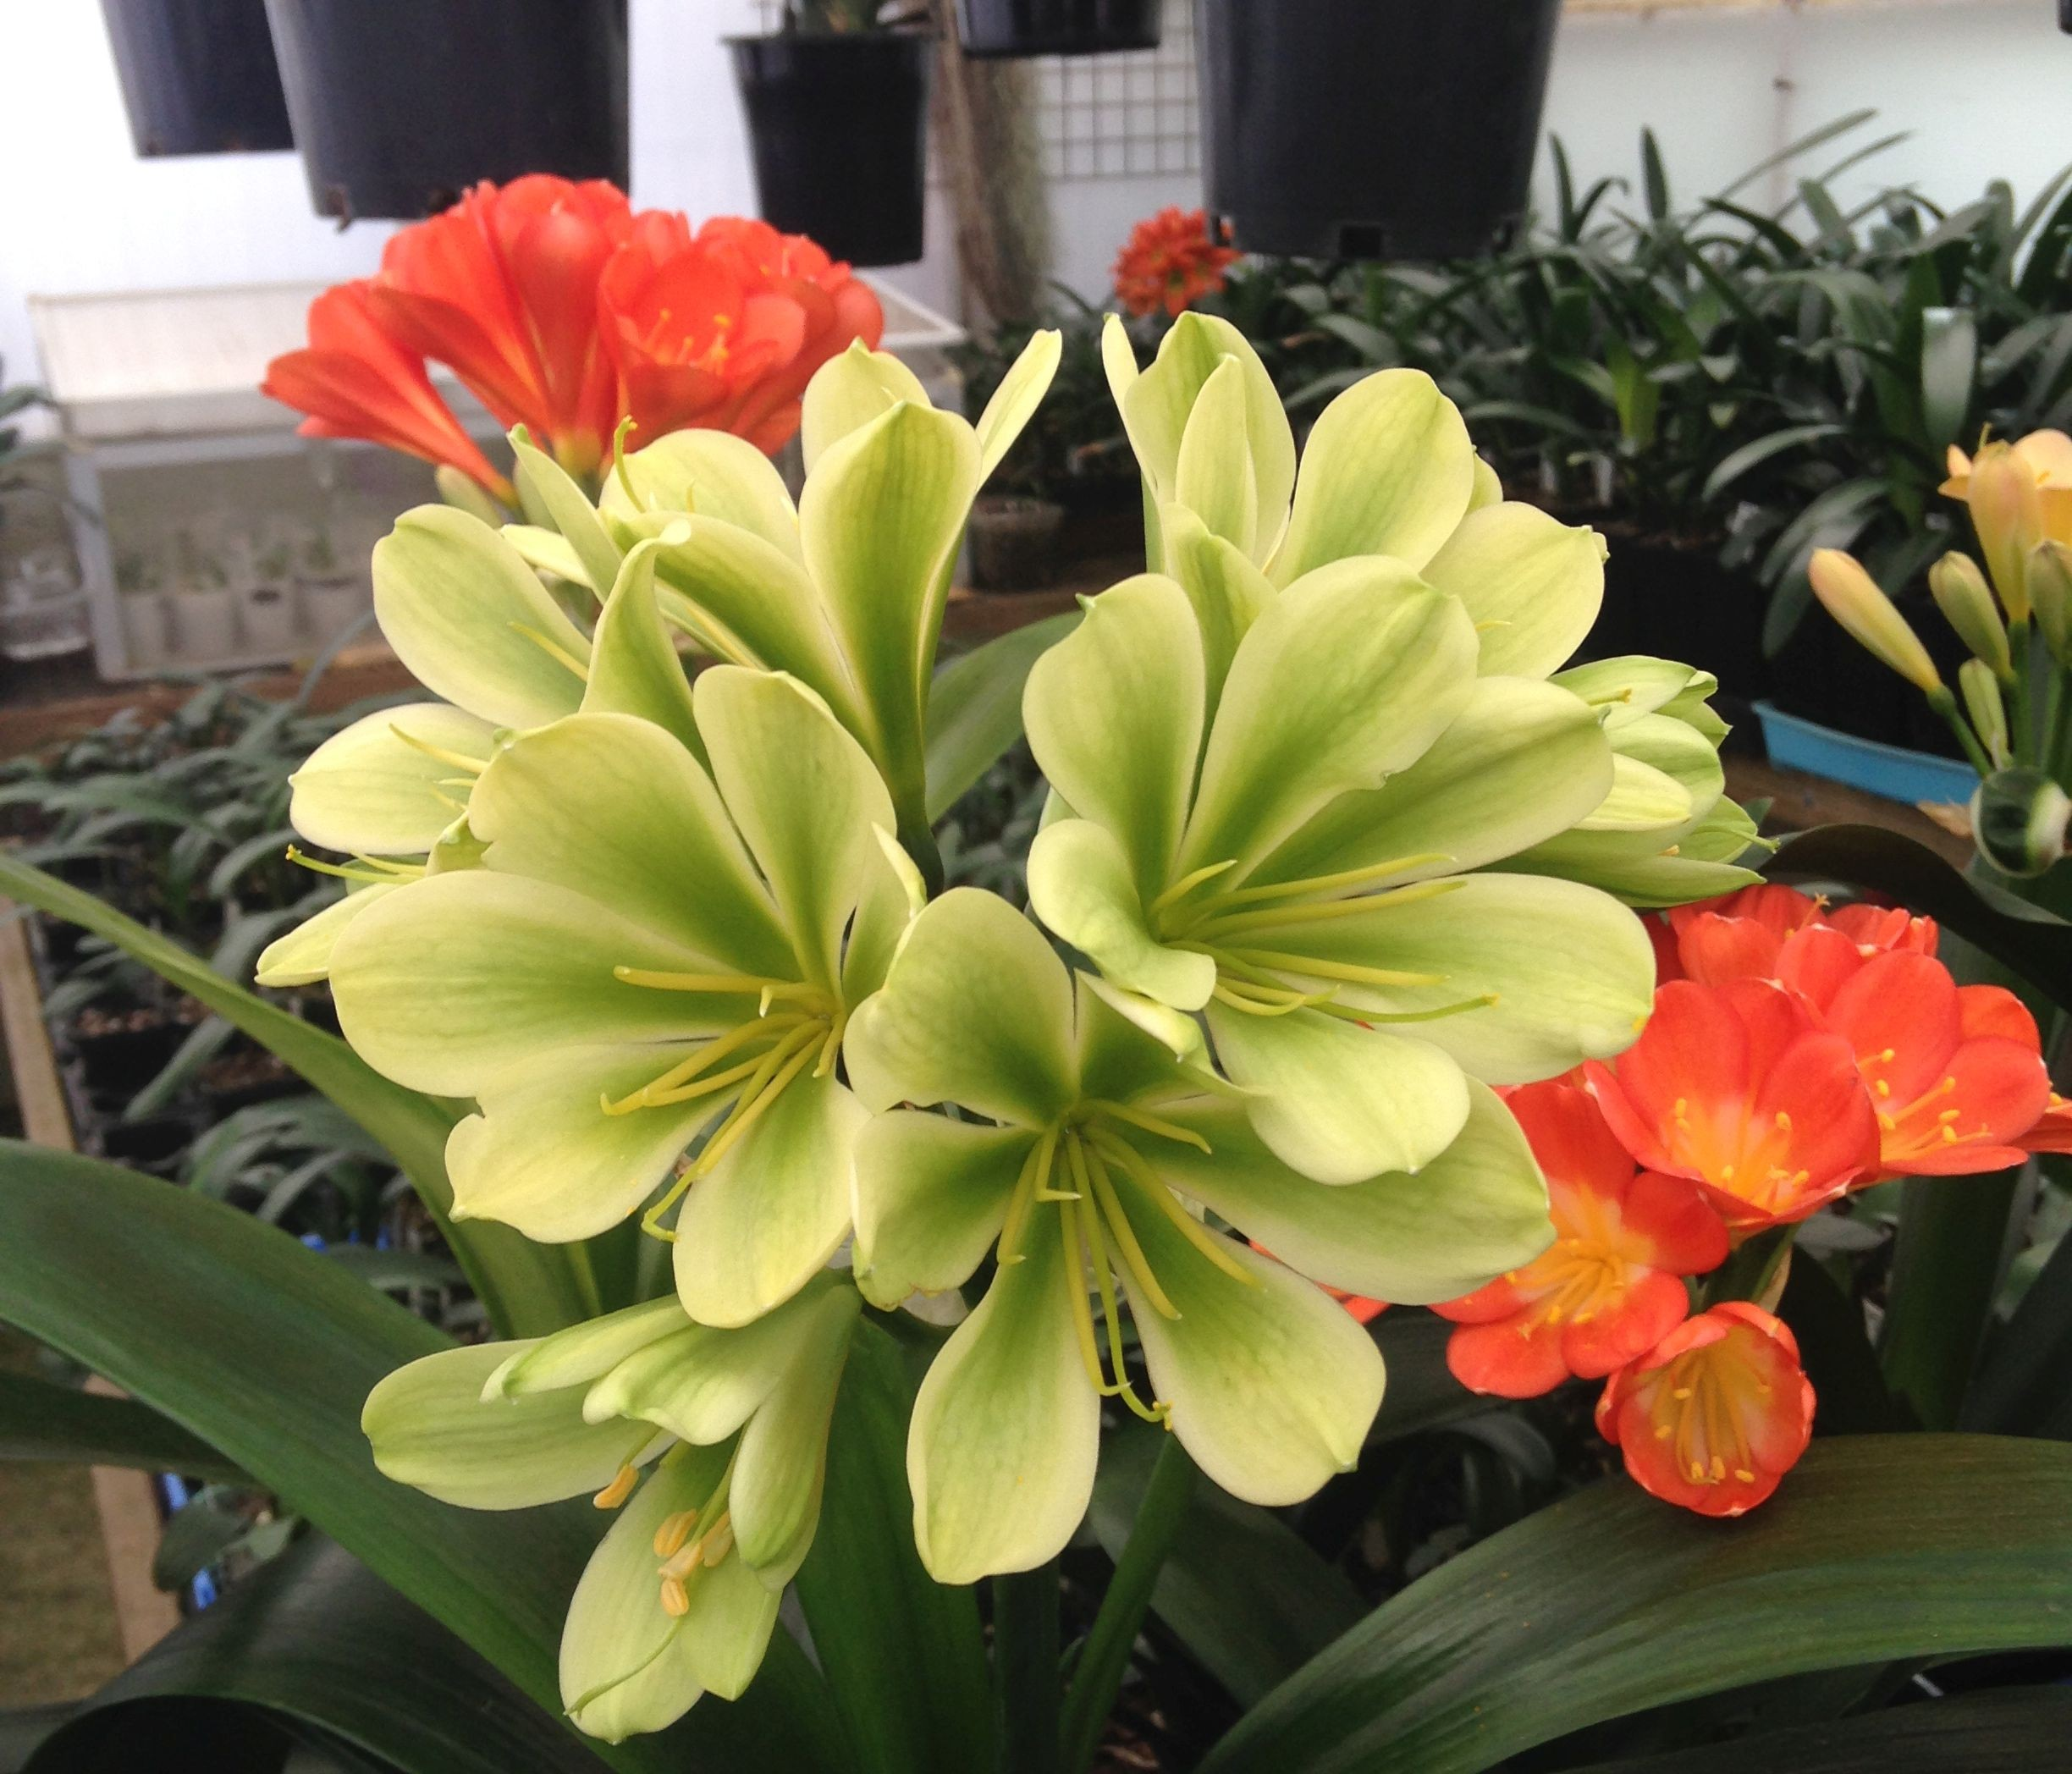 Clivia miniata seeding - will flower BRONZE